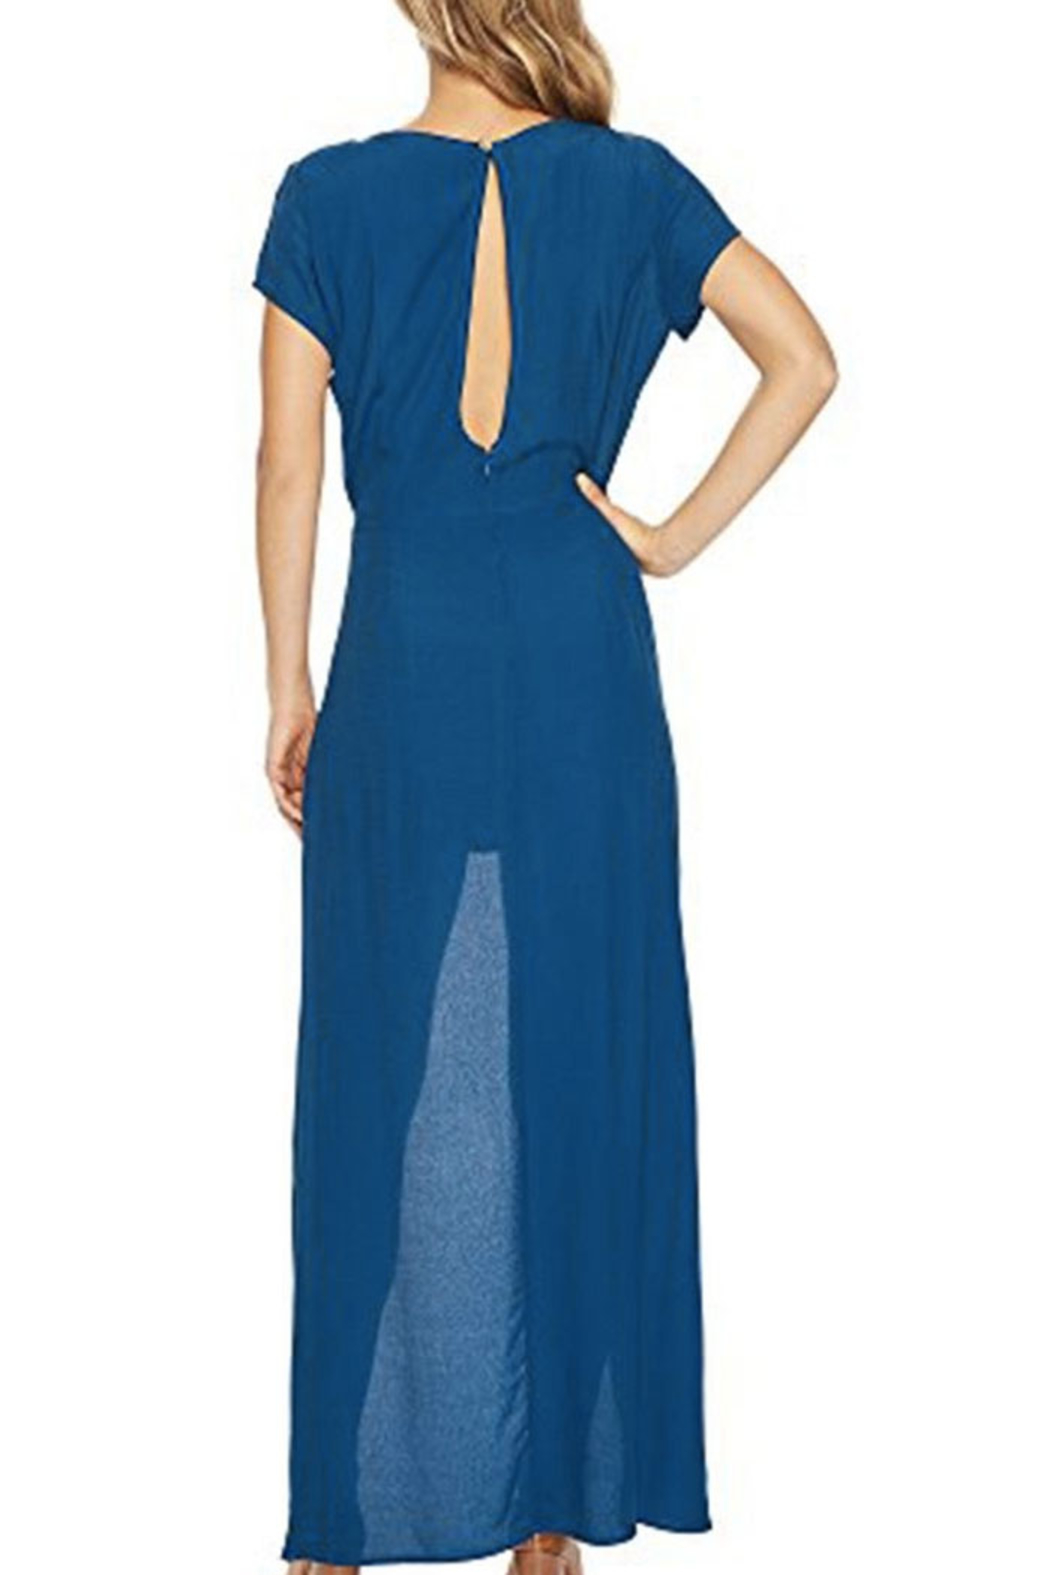 Lucy Love Lapis Romper Dress - Back Cropped Image